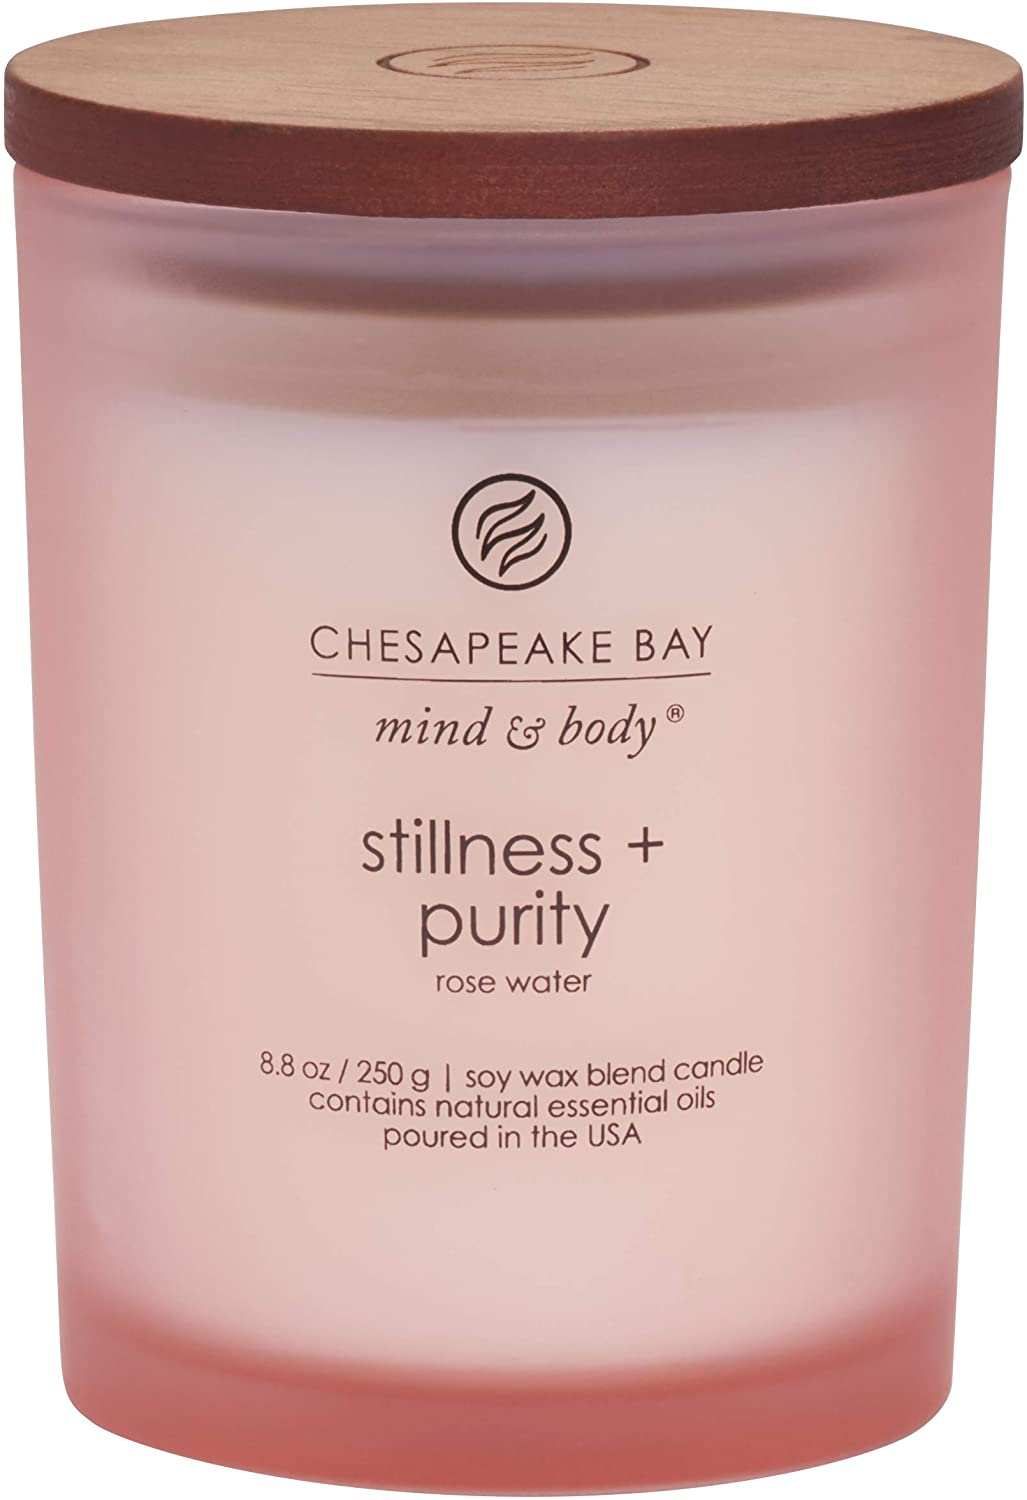 Chesapeake Bay Candle Scented Candle, Stillness + Purity (Rose Water), Medium